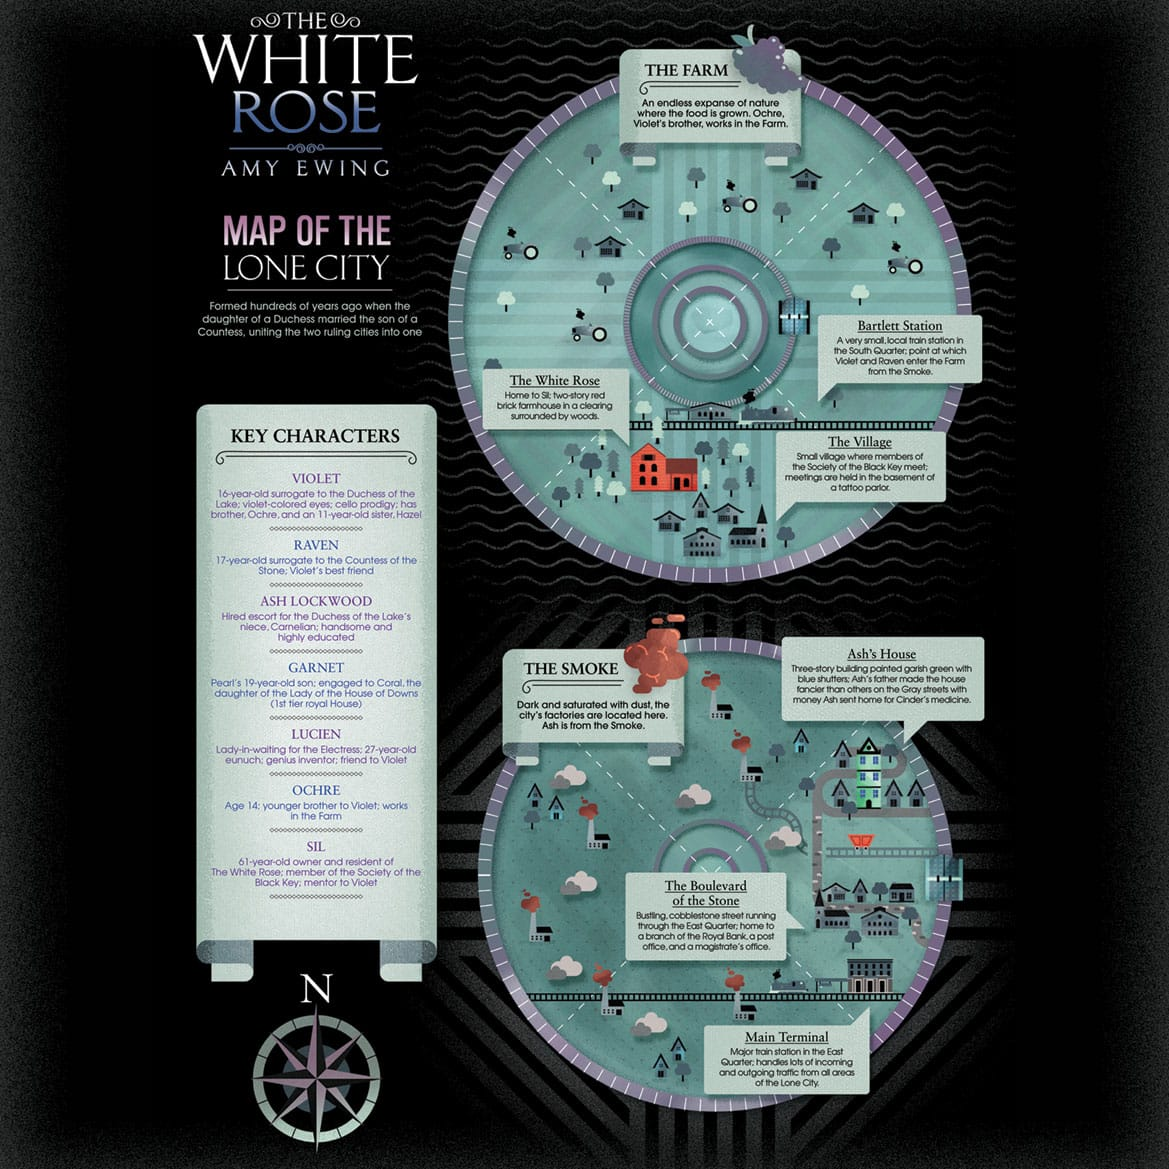 The White Rose map